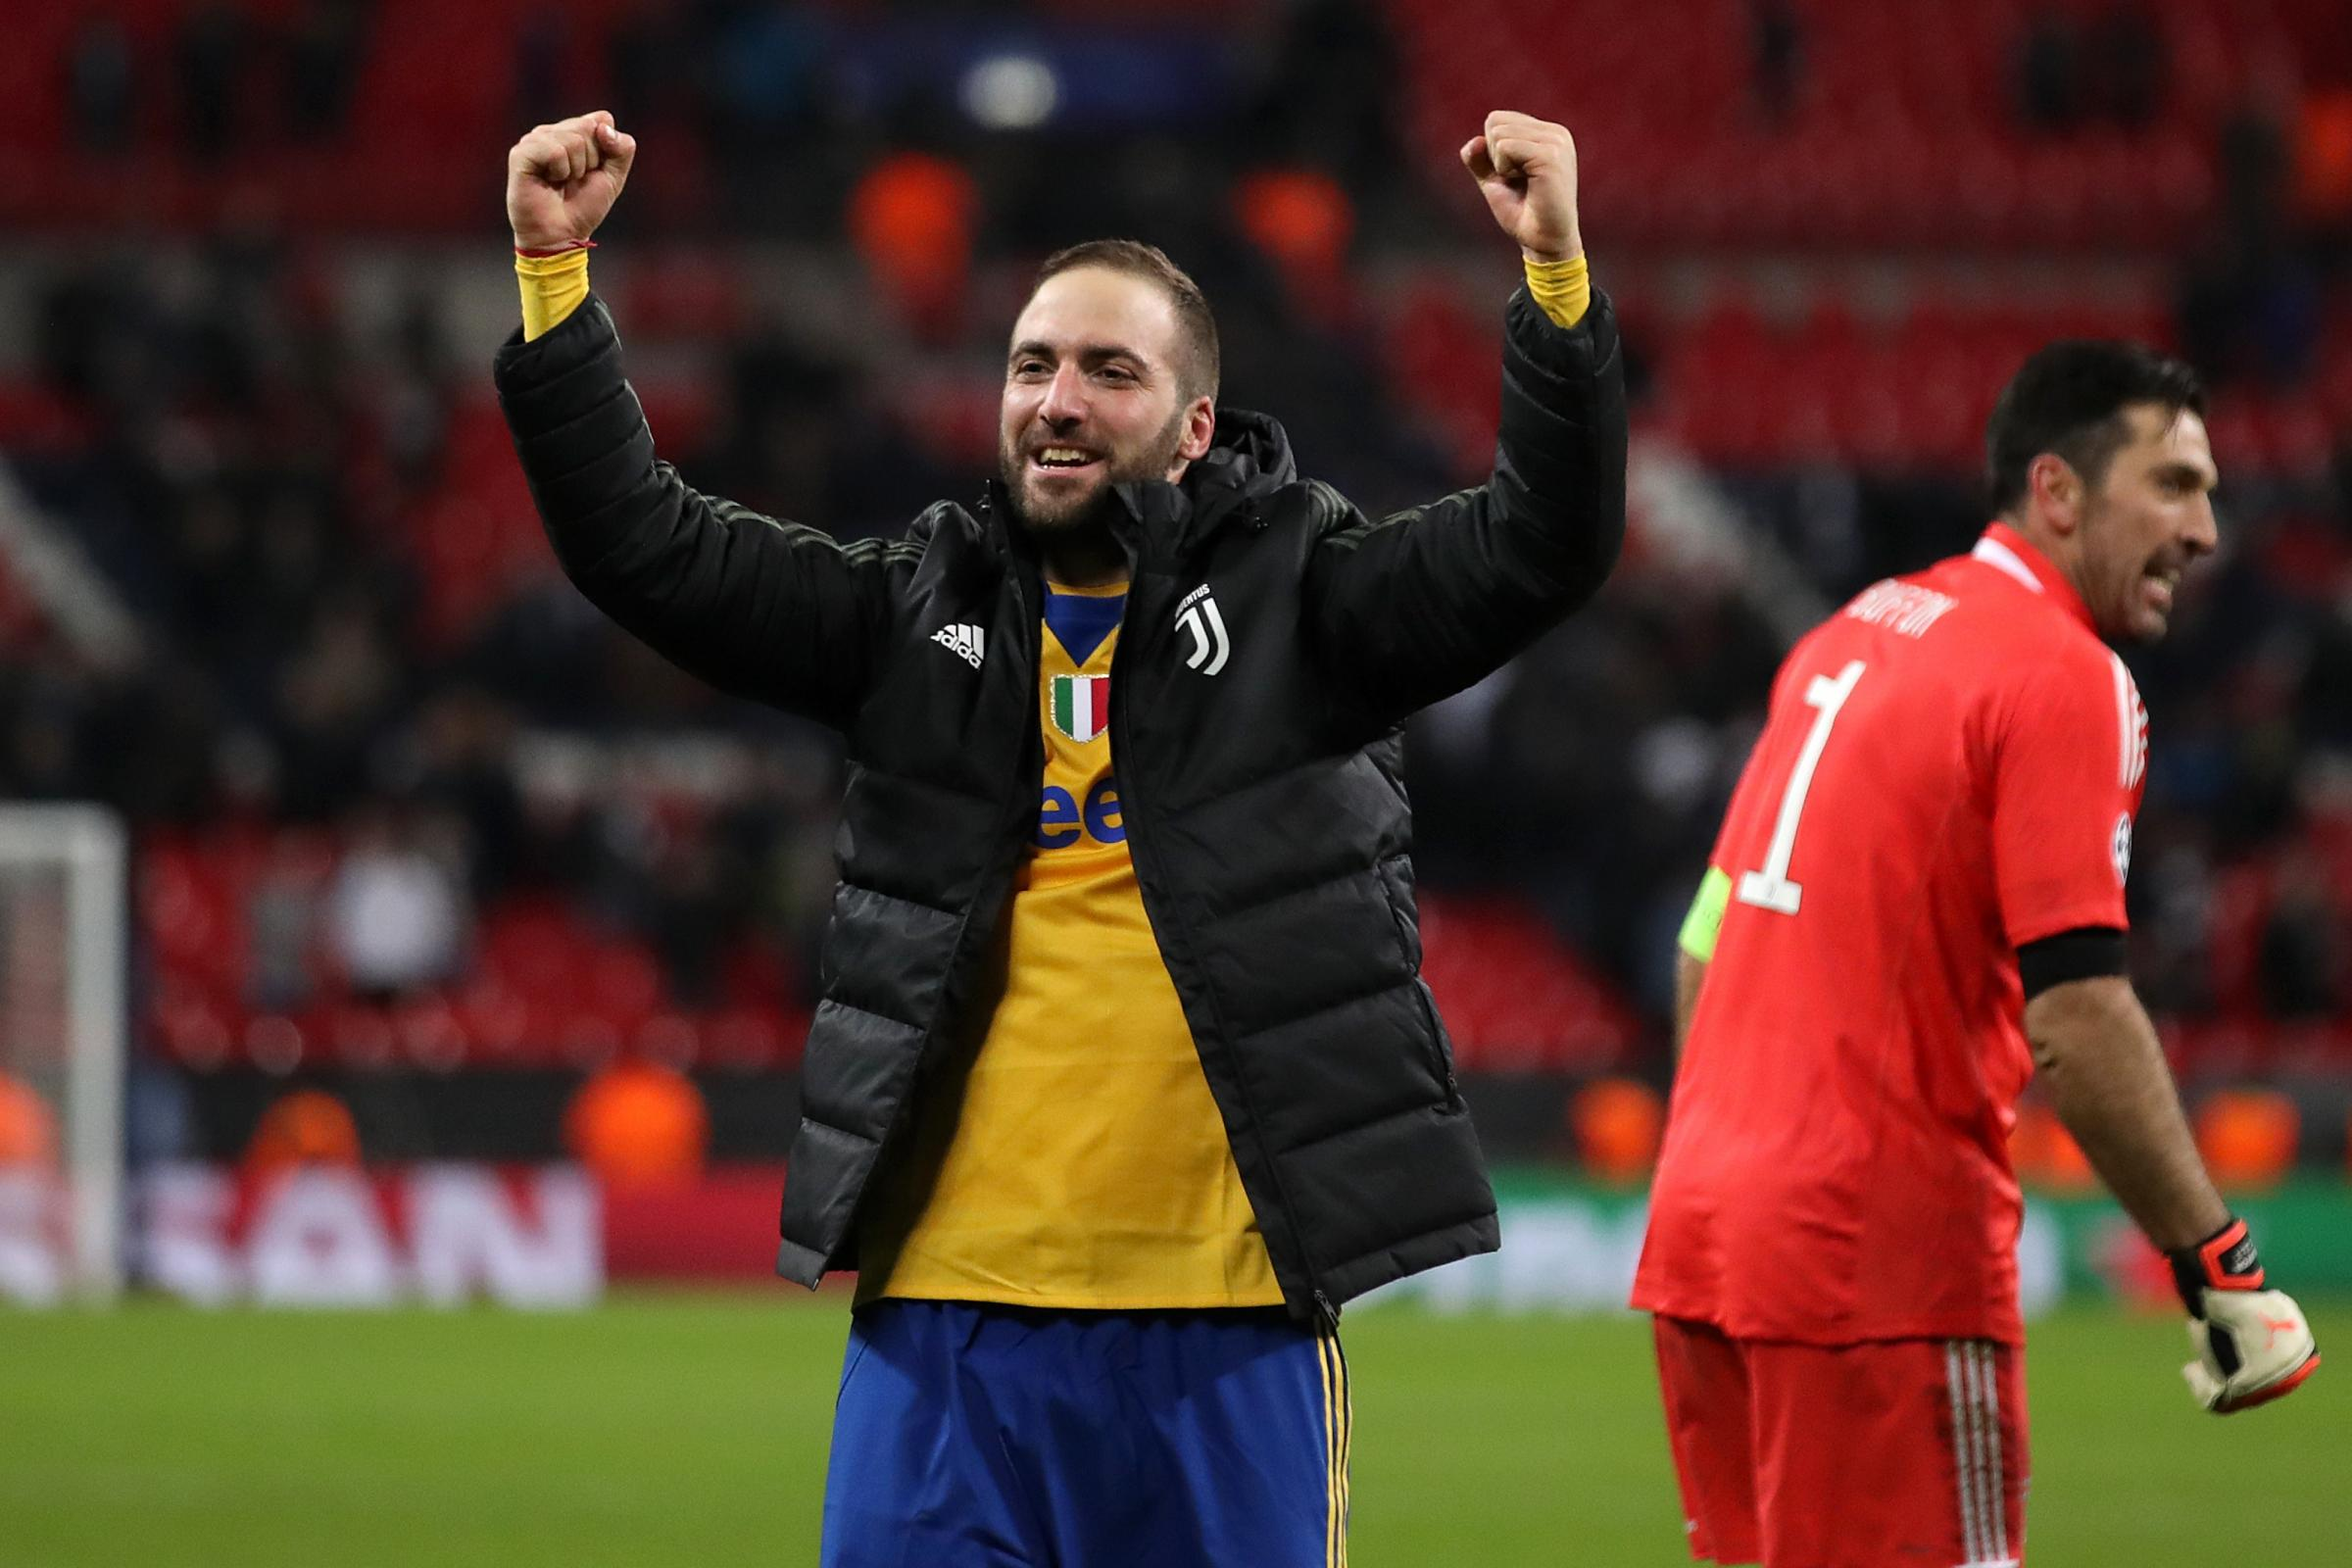 Gonzalo Higuain is expected to join Chelsea